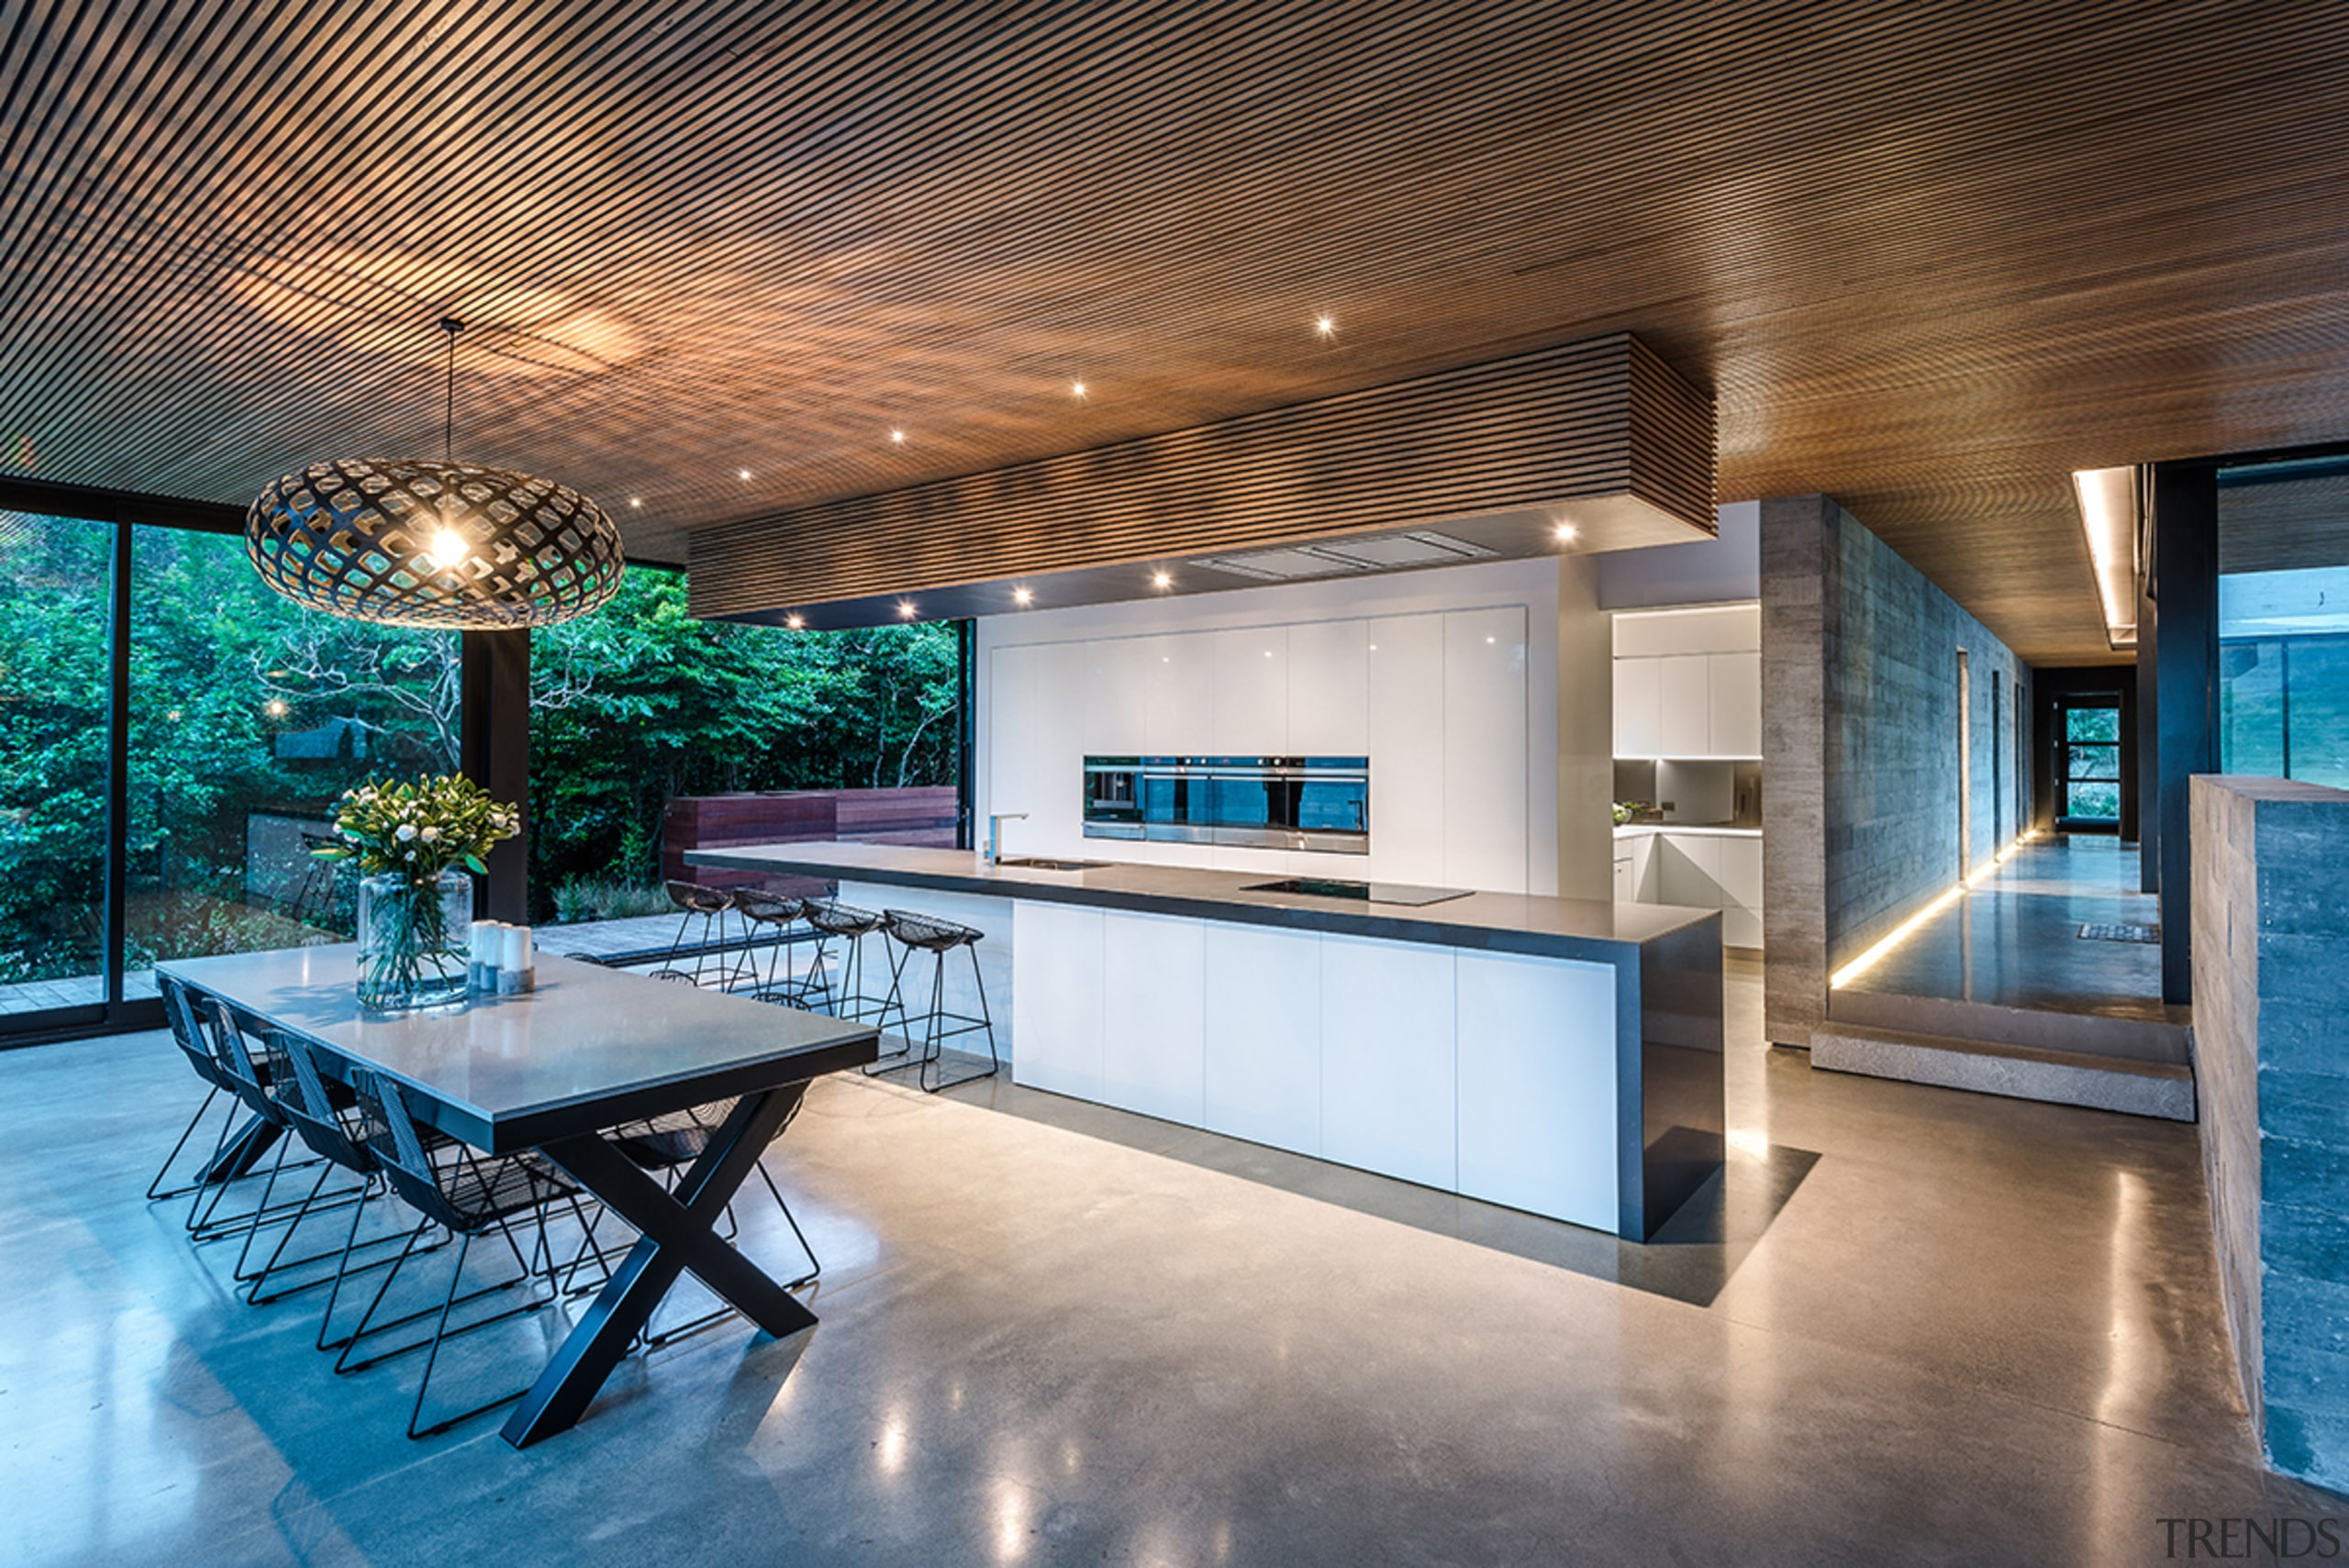 Read the full story architecture, building, ceiling, countertop, design, estate, floor, flooring, furniture, home, house, interior design, kitchen, lighting, property, real estate, room, table, tile, gray